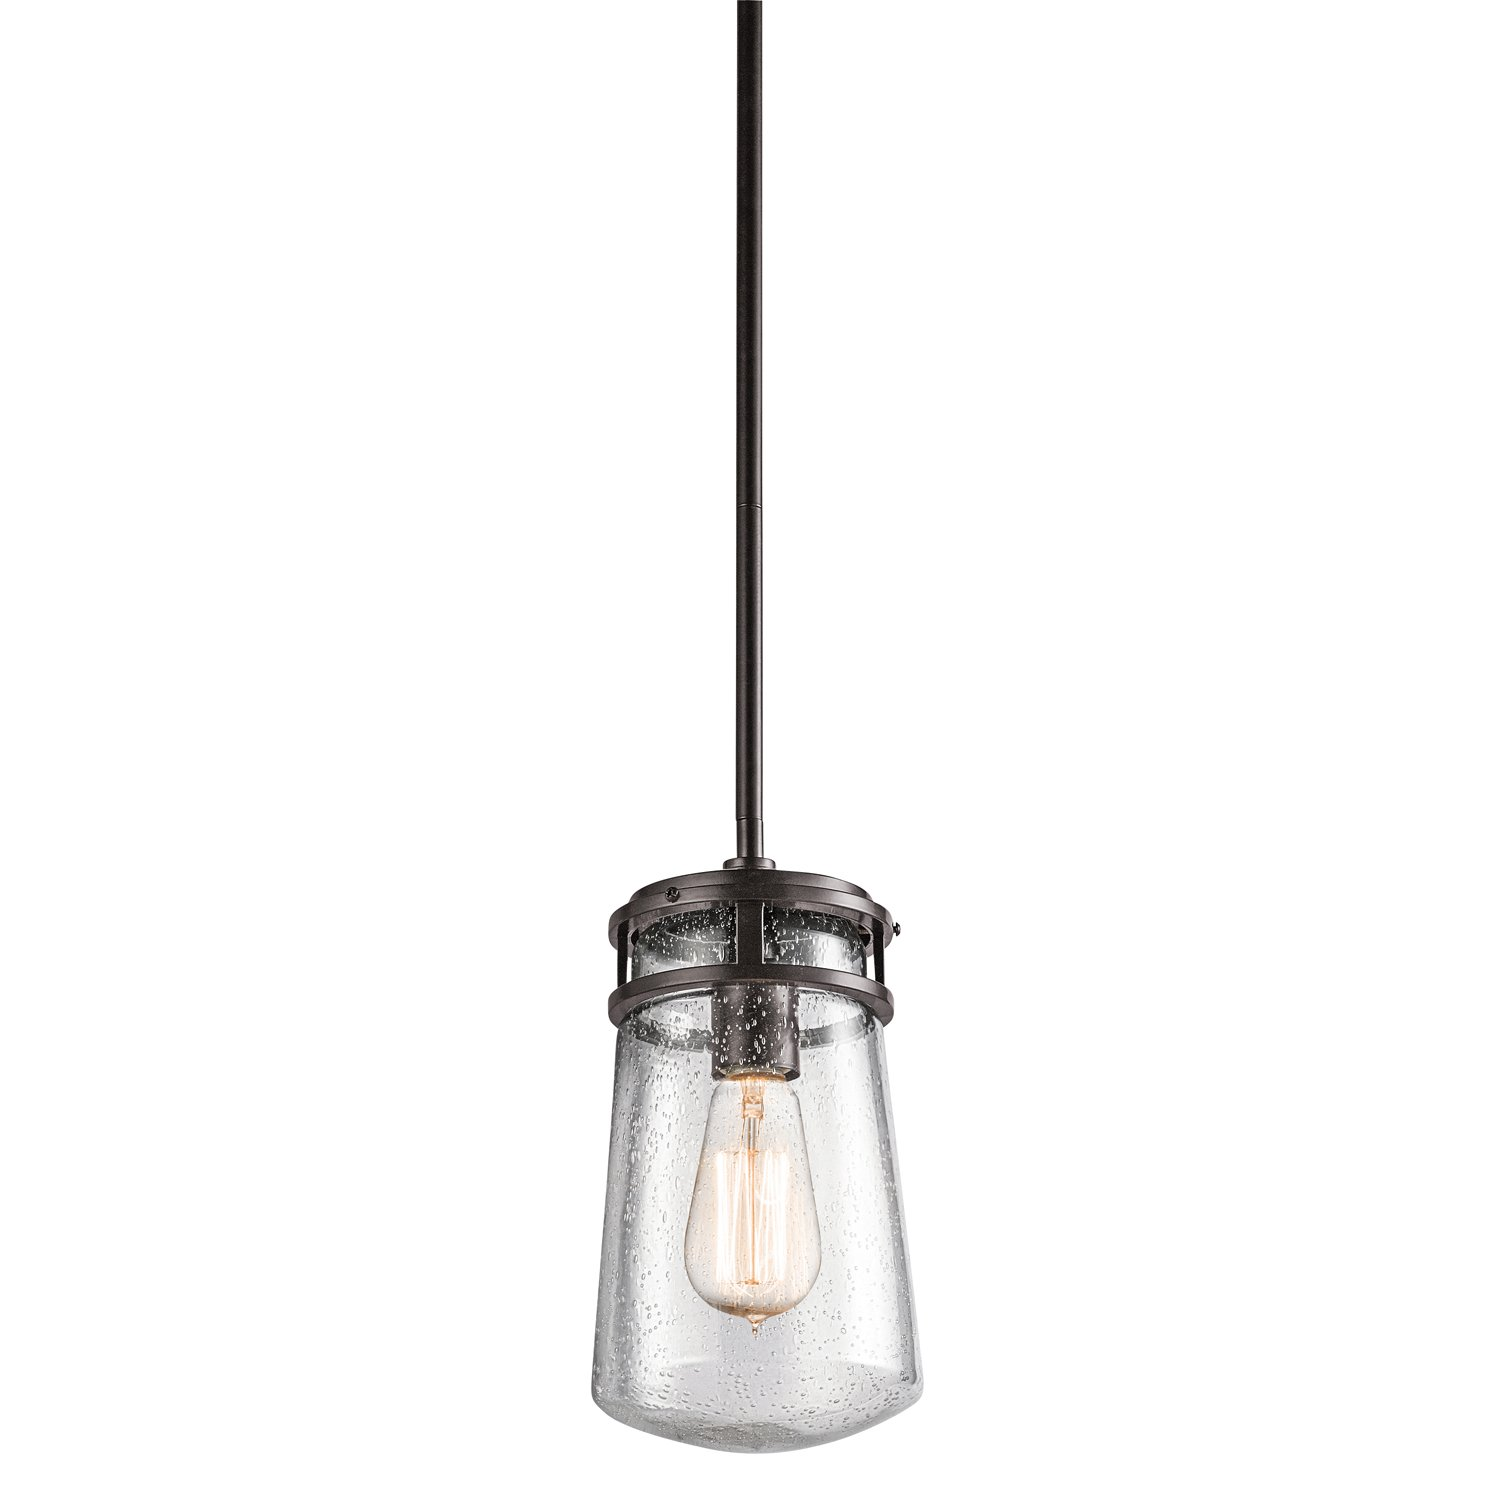 Outdoor Hanging Lighting Kichler 49446az one light outdoor pendant amazon workwithnaturefo